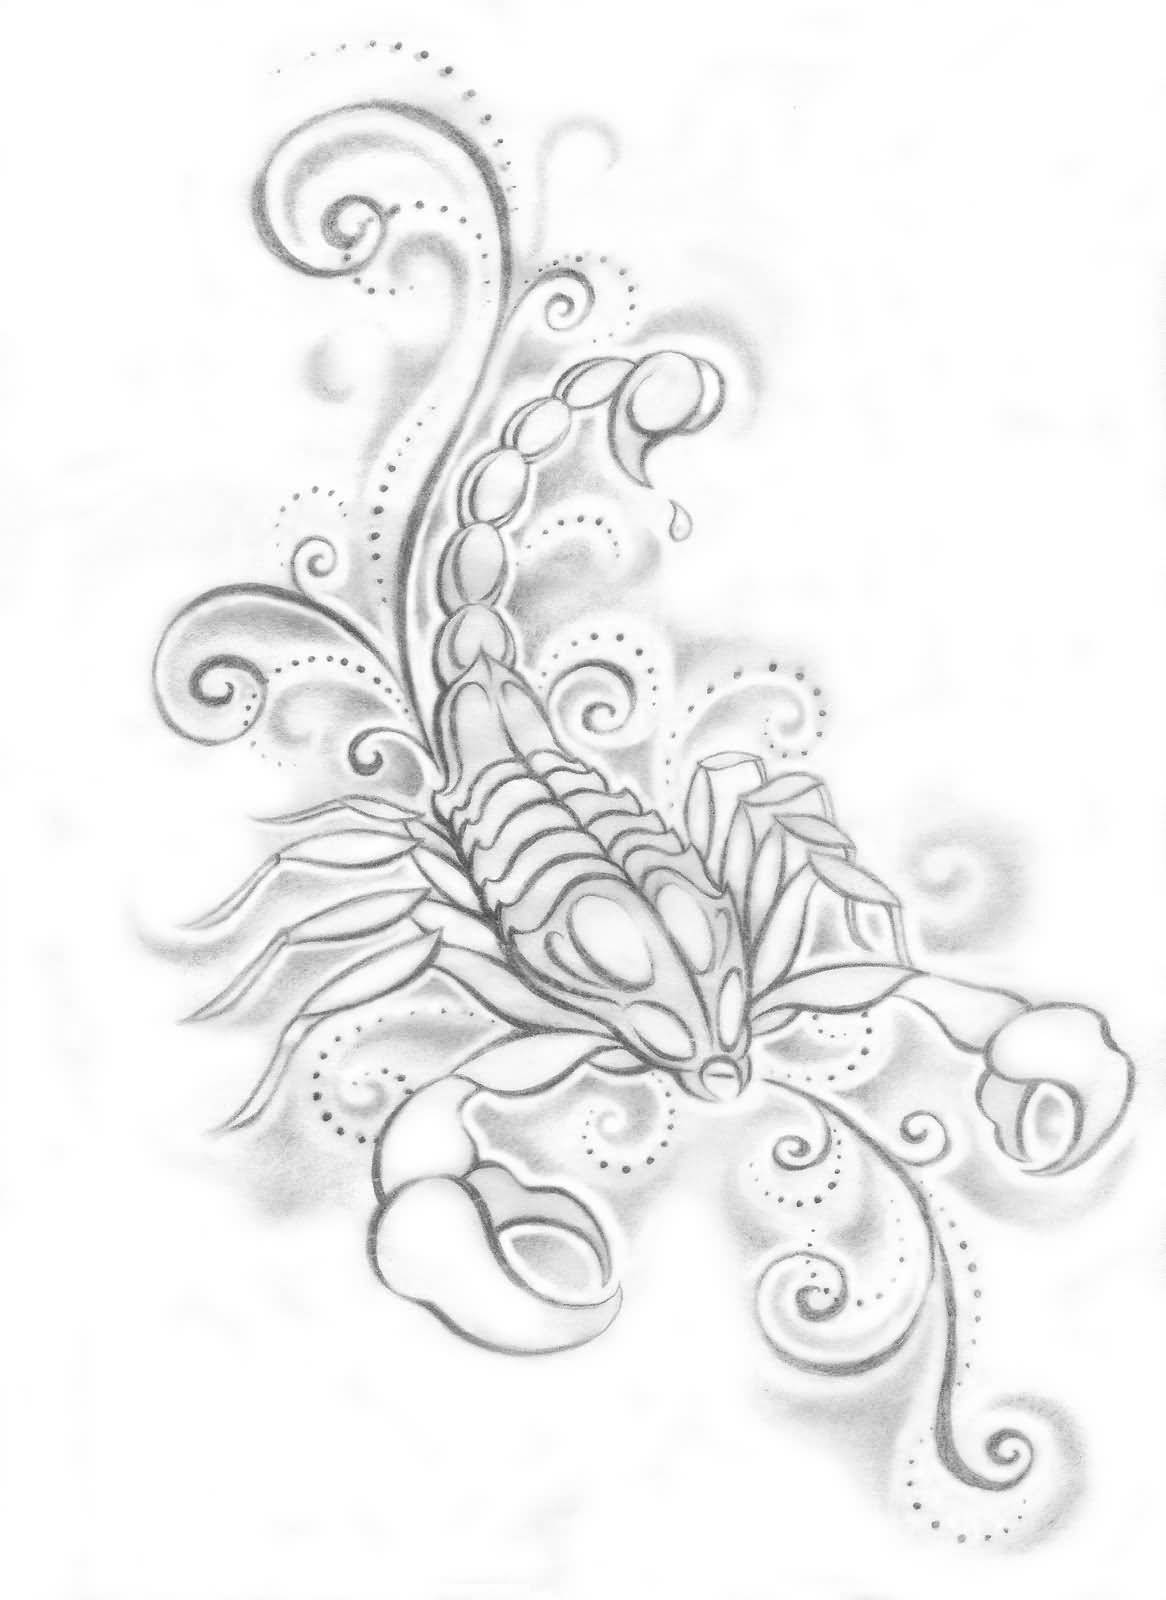 Girly Scorpion Tattoo Design